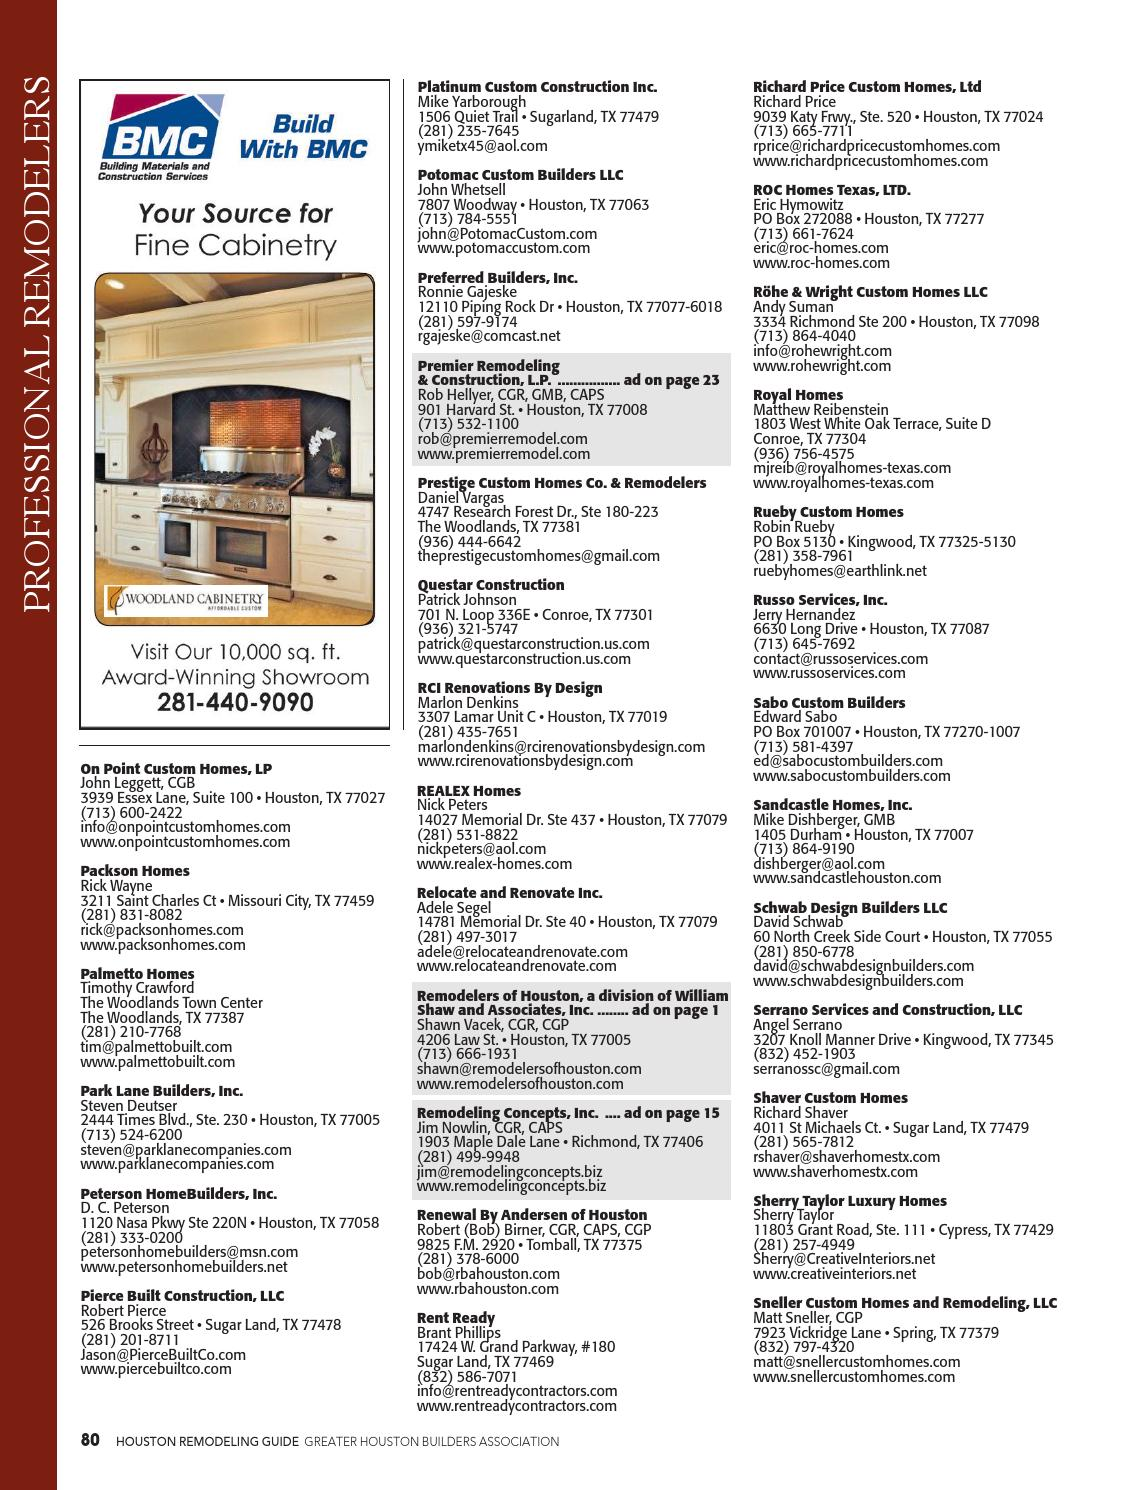 Featured in Houston Remodeling Guide by (GHBA)Greater Houston